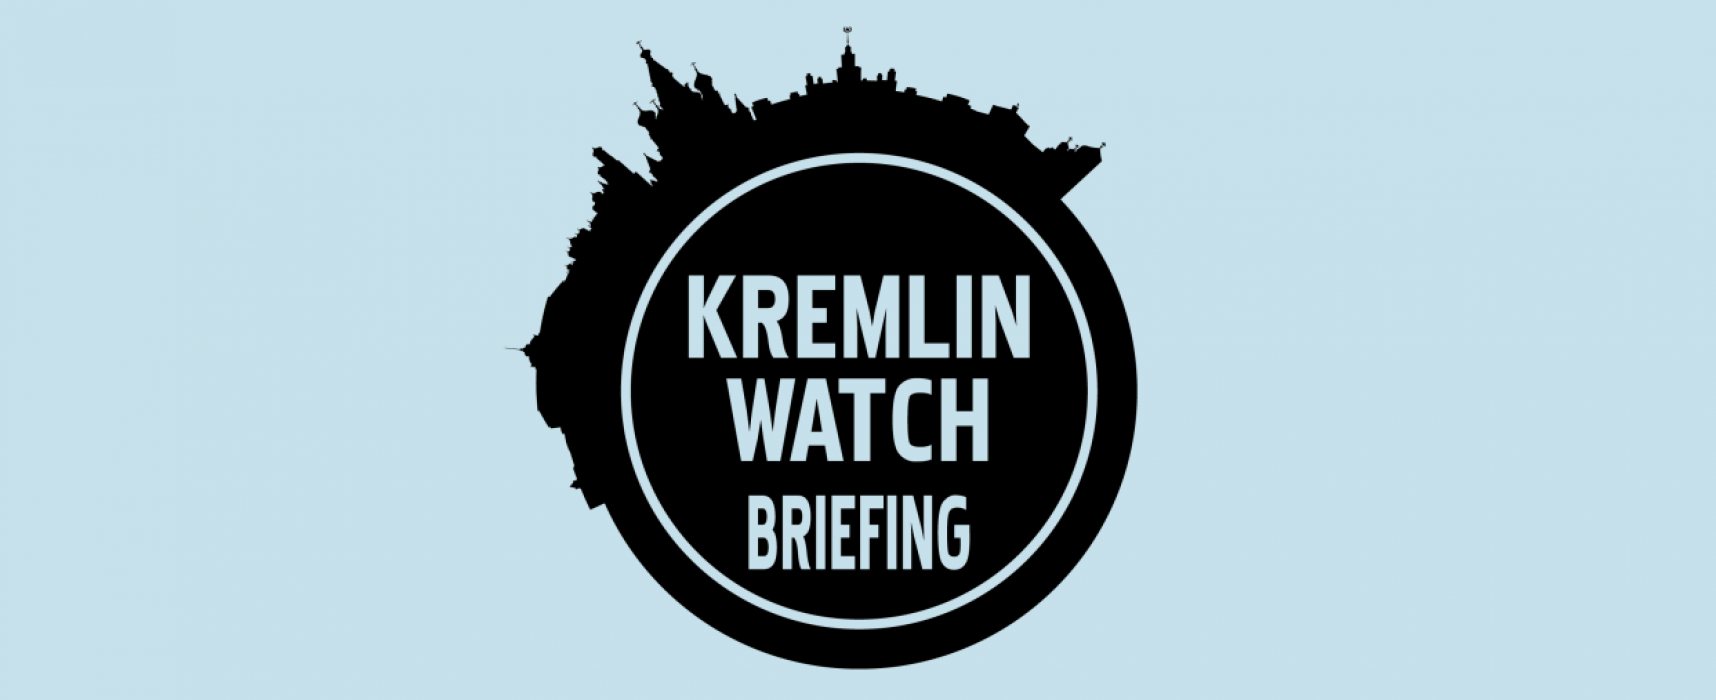 Kremlin Watch Briefing: For the Sake of Transatlantic Security, Stop Nord Stream 2